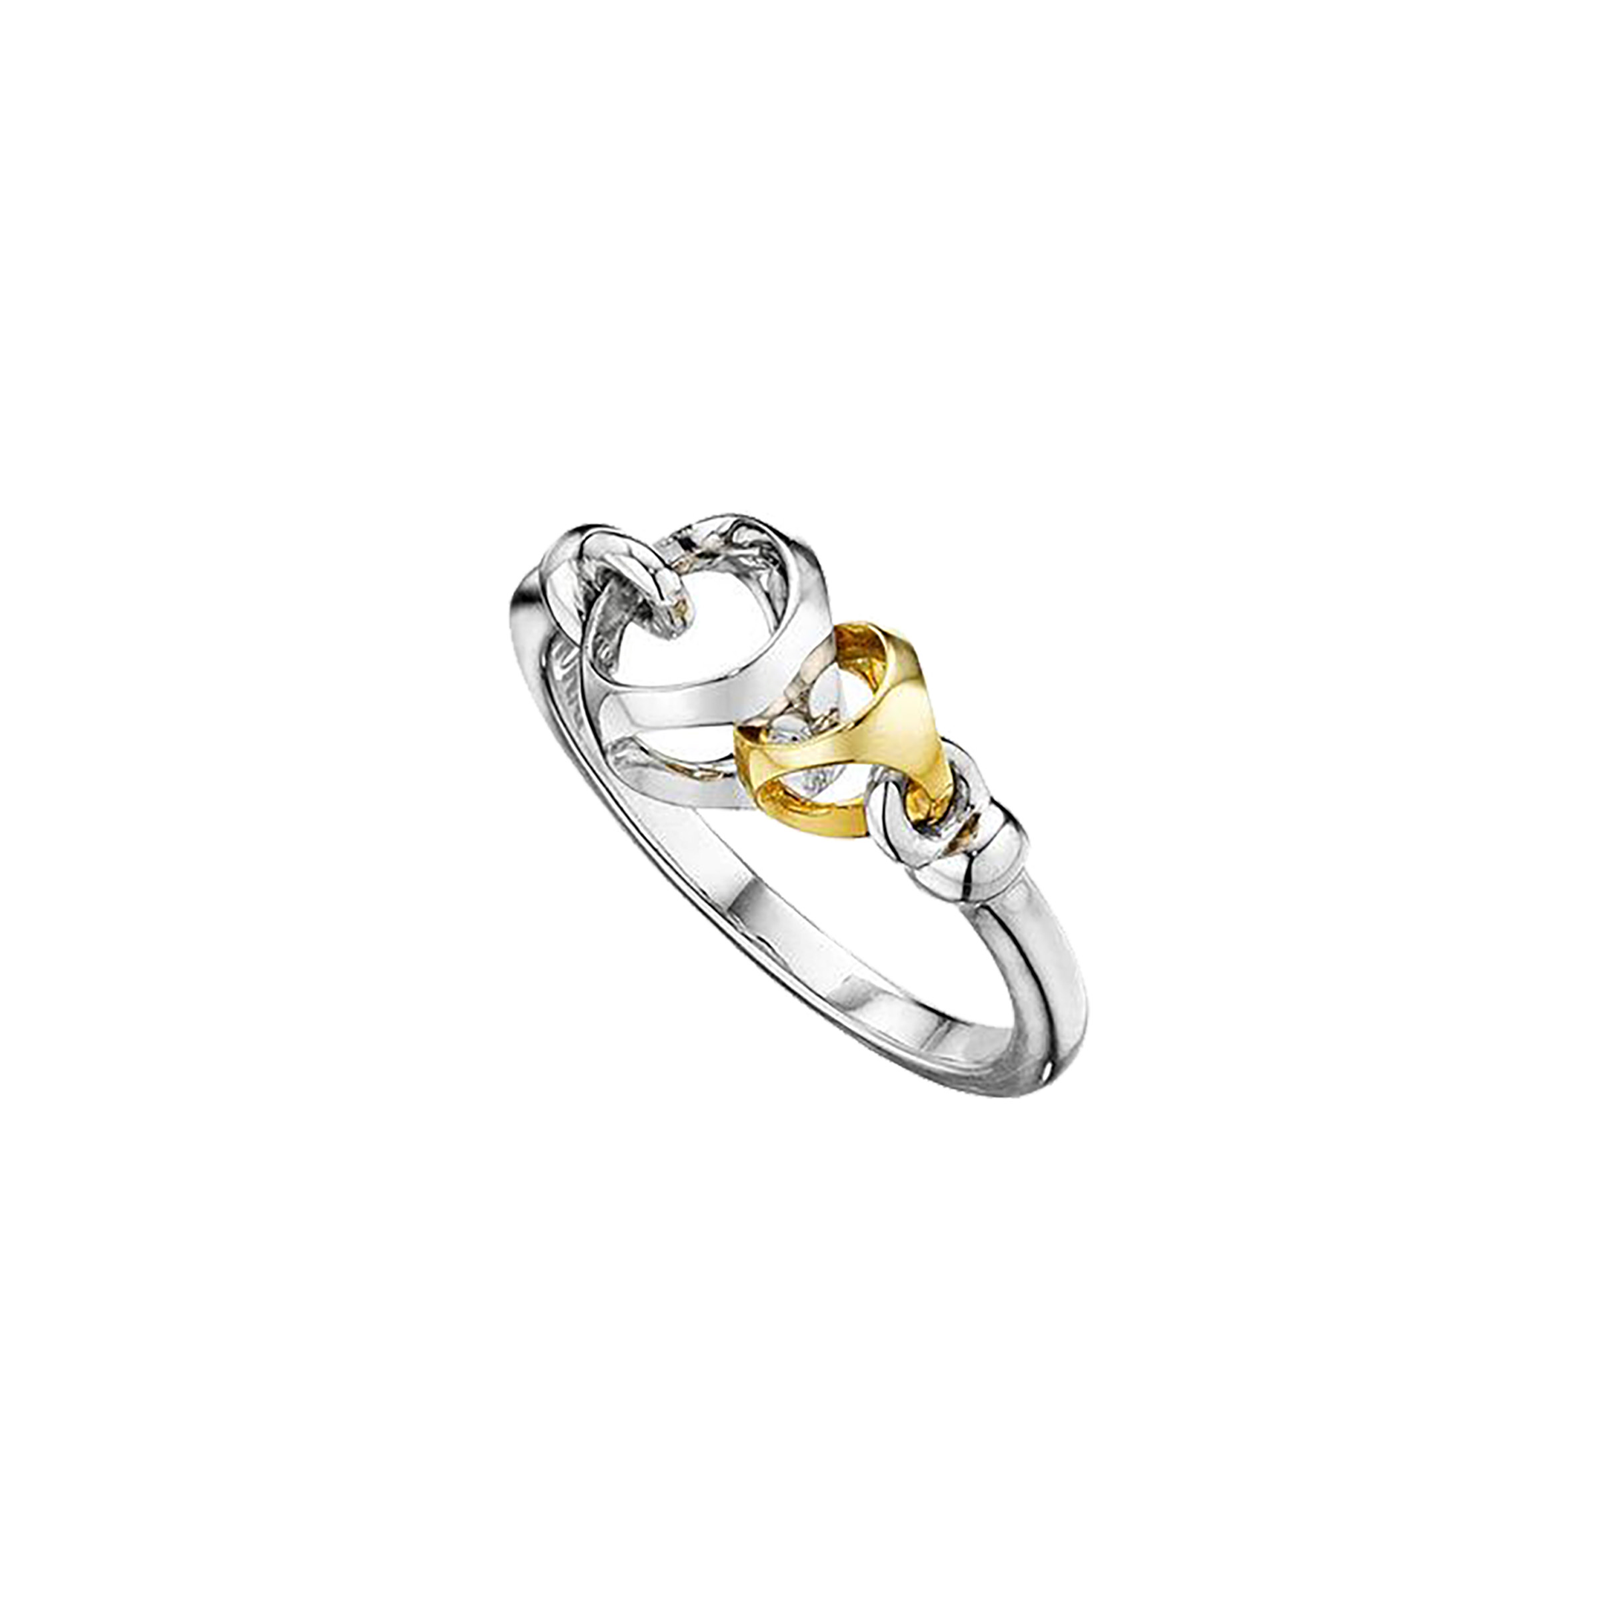 Di Modolo Linked By Love Silver and Gold Ring - Ring Size N